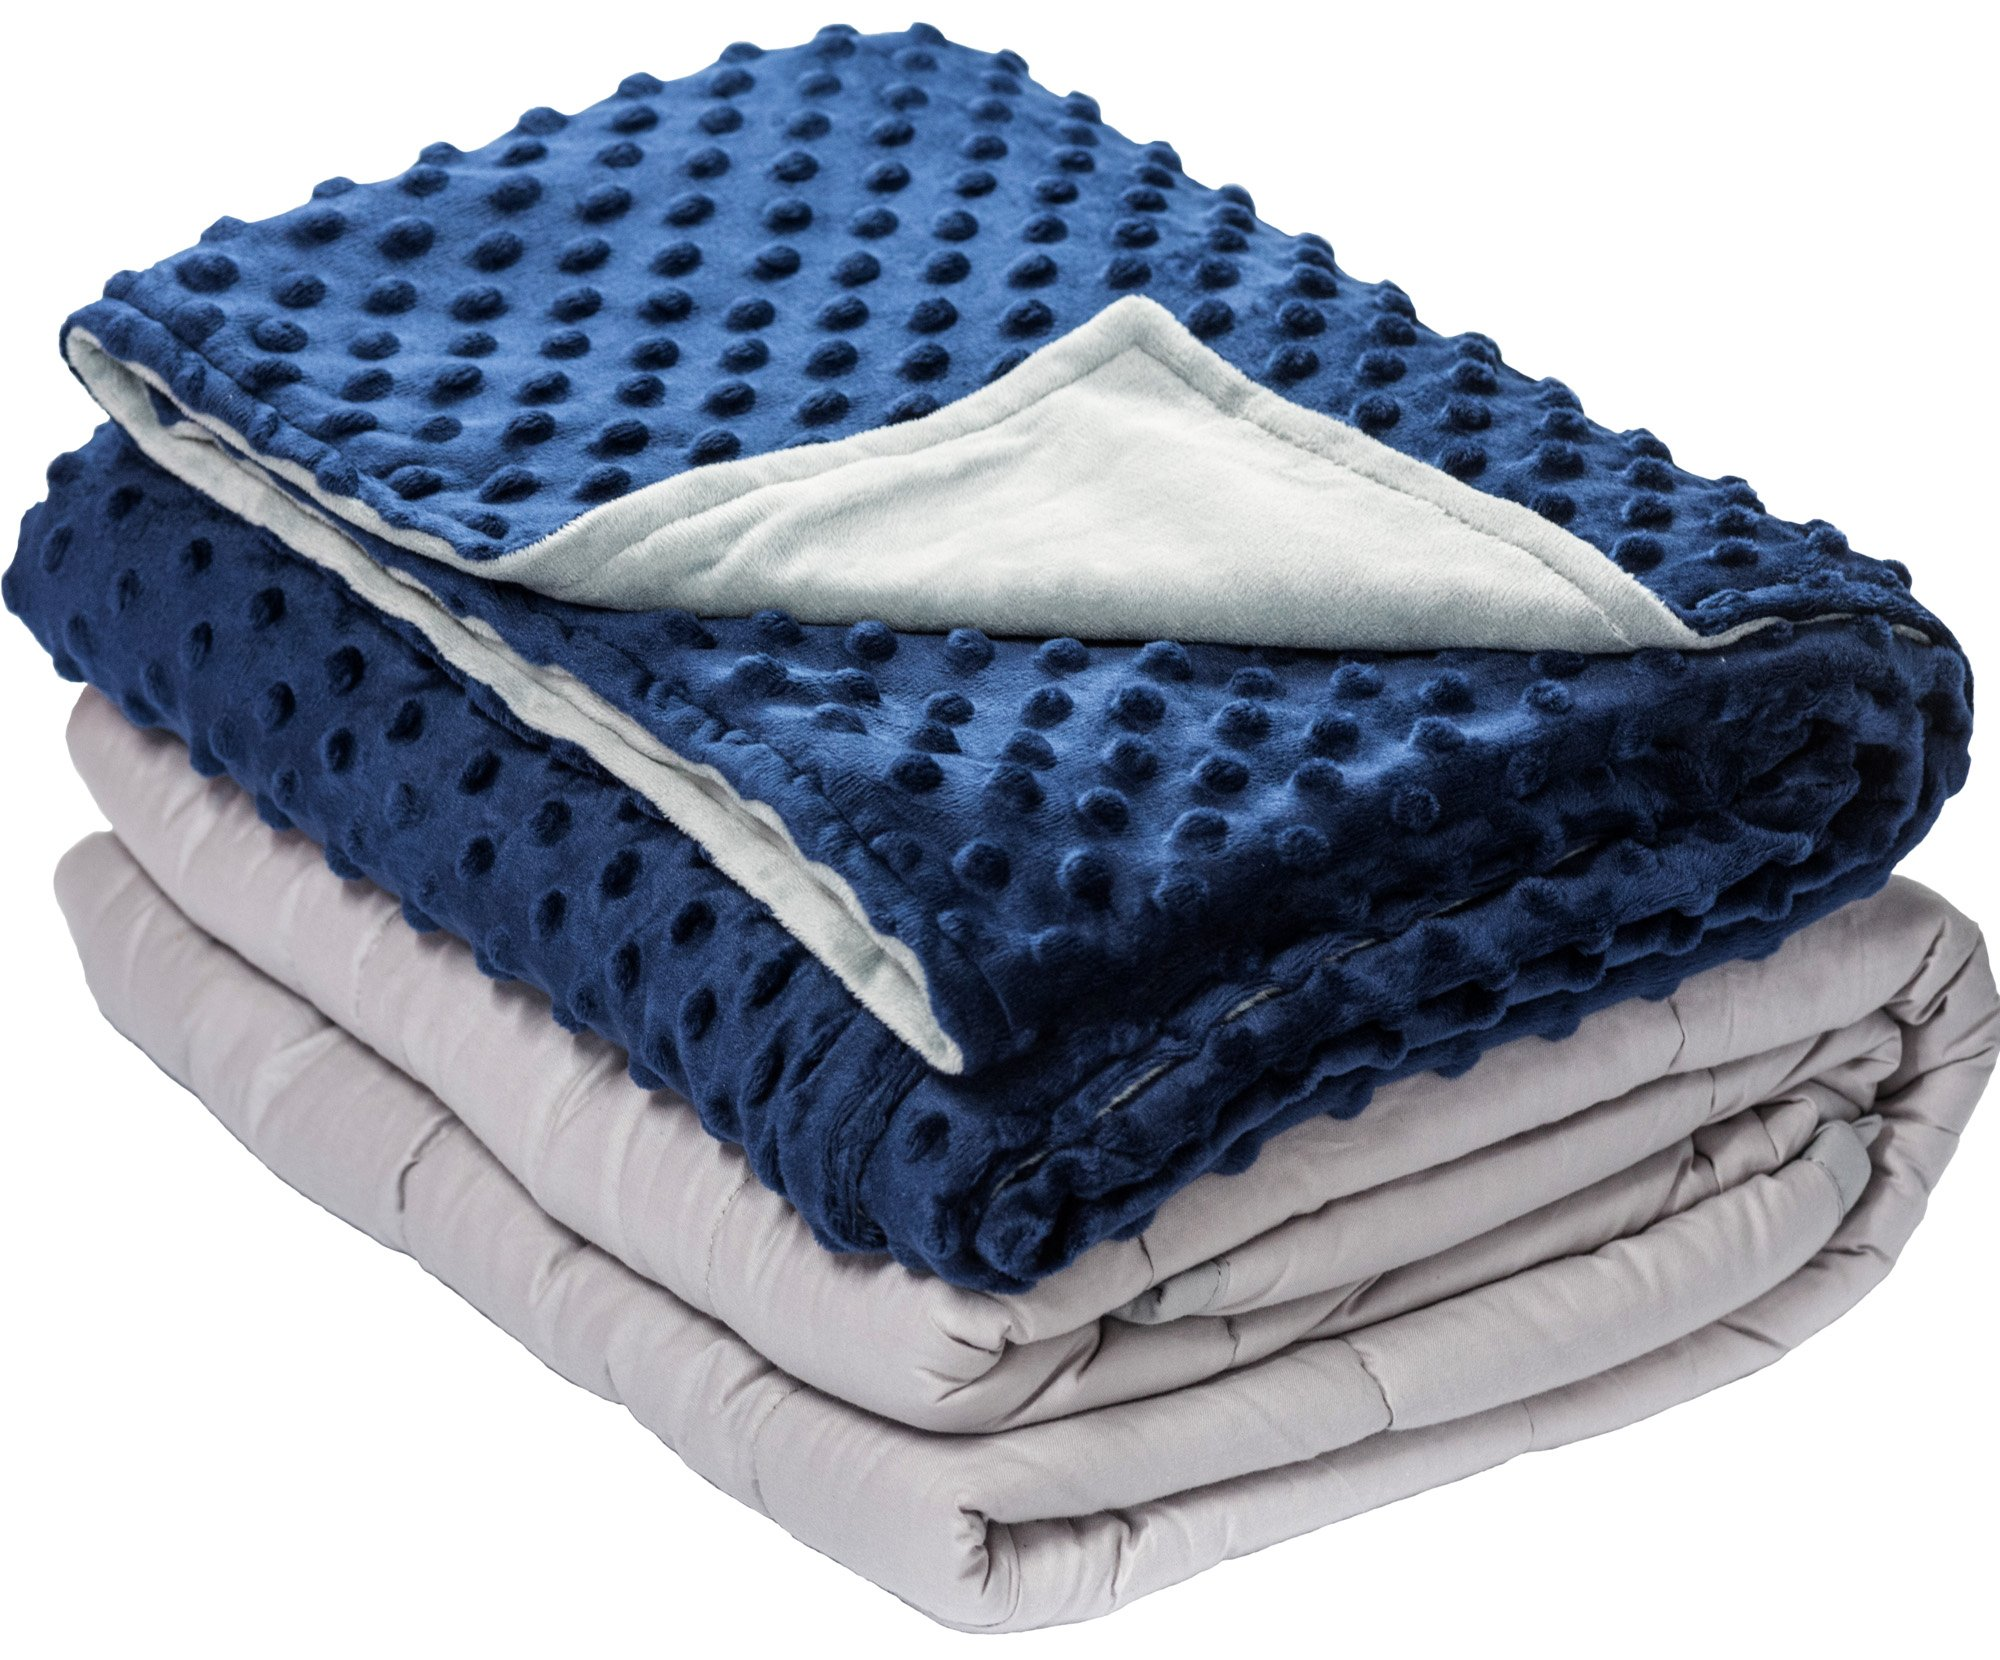 10 lbs Weighted Blanket with Dot Minky Cover for Kids Teens (Inner Light Gray/Cover Navy Blue & Gray, 48''x68'' 10lbs) by Loved Blanket